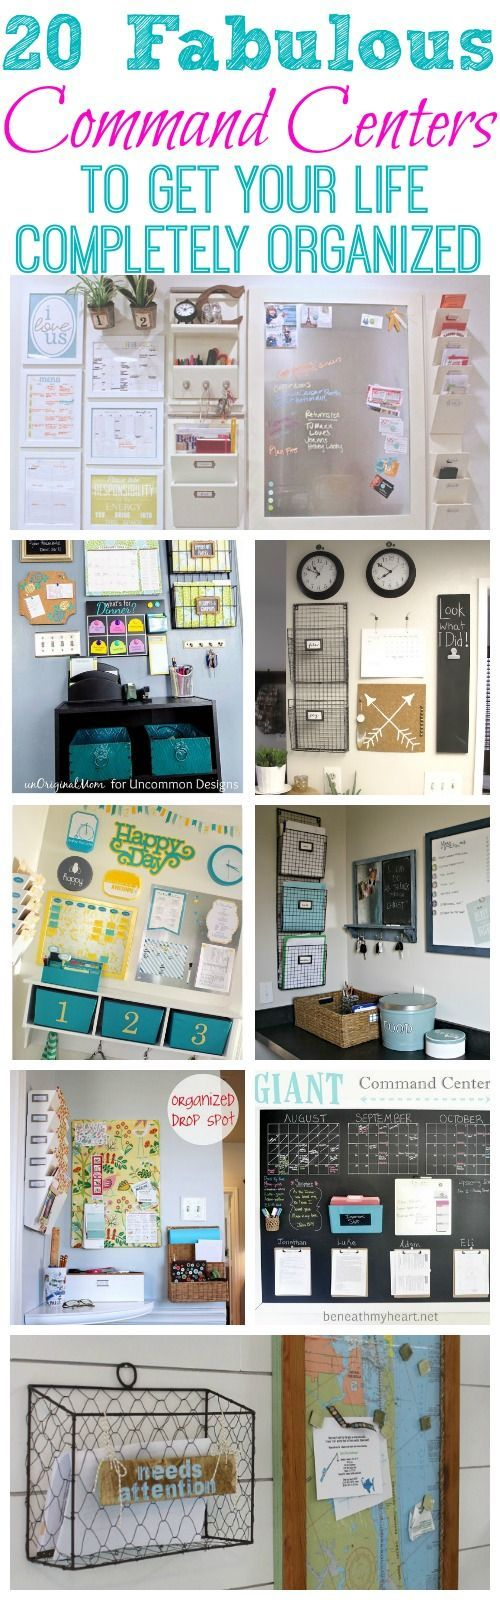 20 Fabulous Command Centers to Get Your Life Completely Organized at The Happy Housie 2